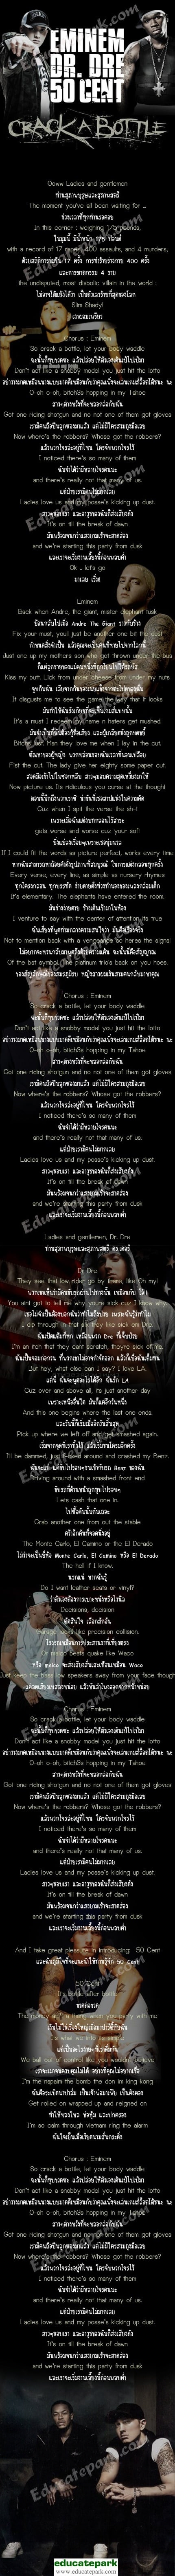 แปลเพลง Crack a bottle - Eminem ft. Dr. Dre and 50 Cent